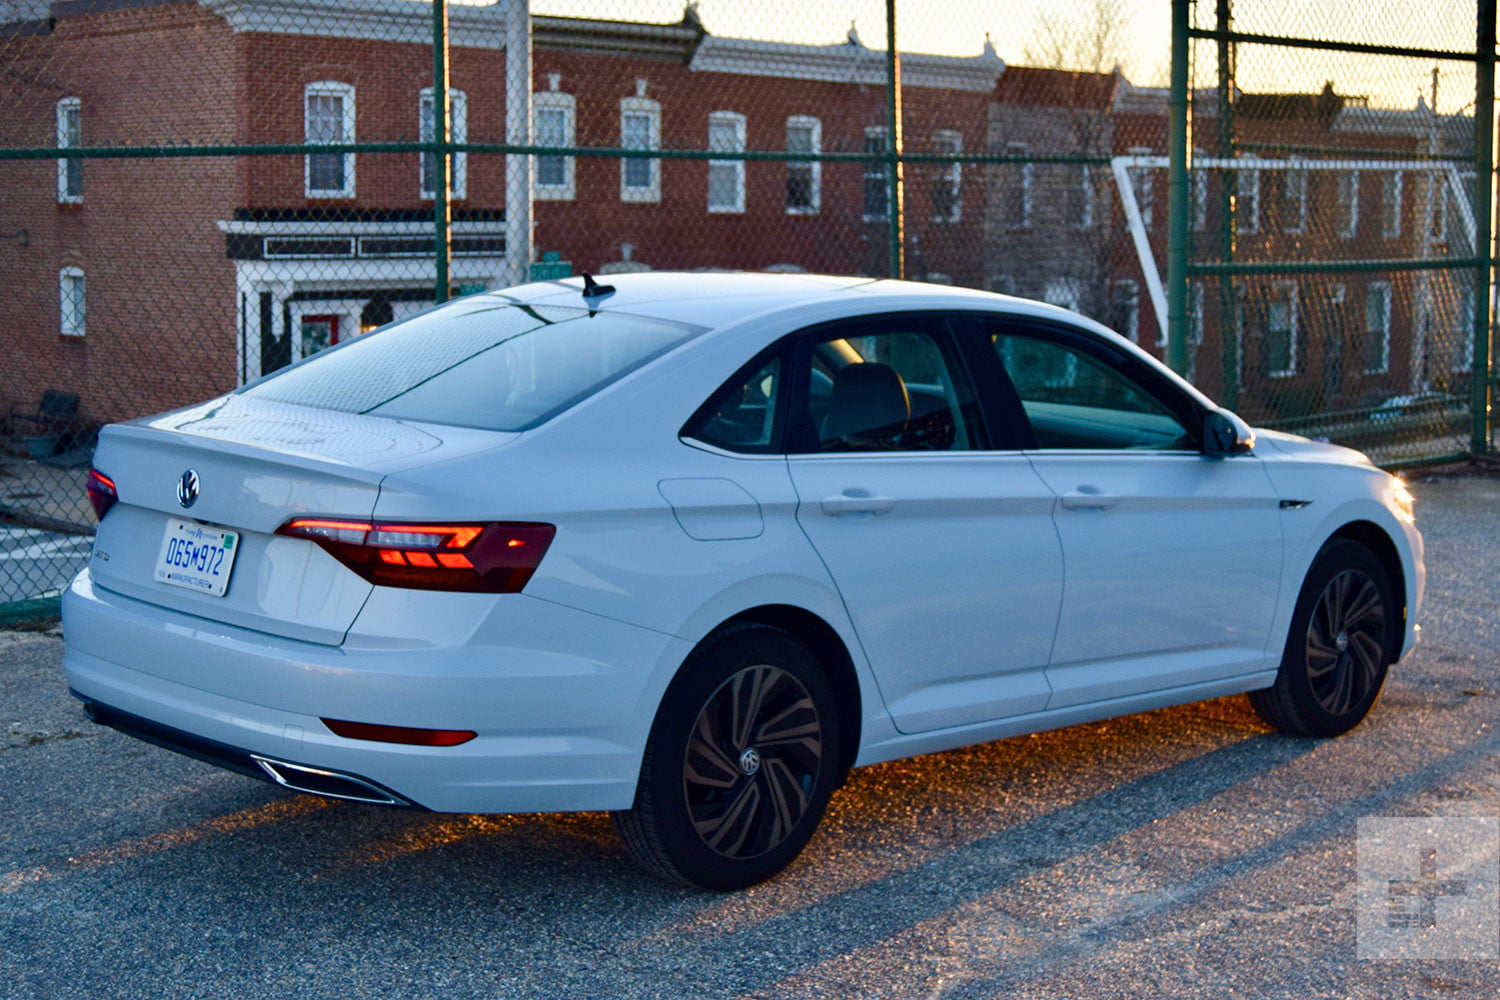 904965f0d 2019 Volkswagen Jetta Review: Massive And Full Of Tech | Digital Trends